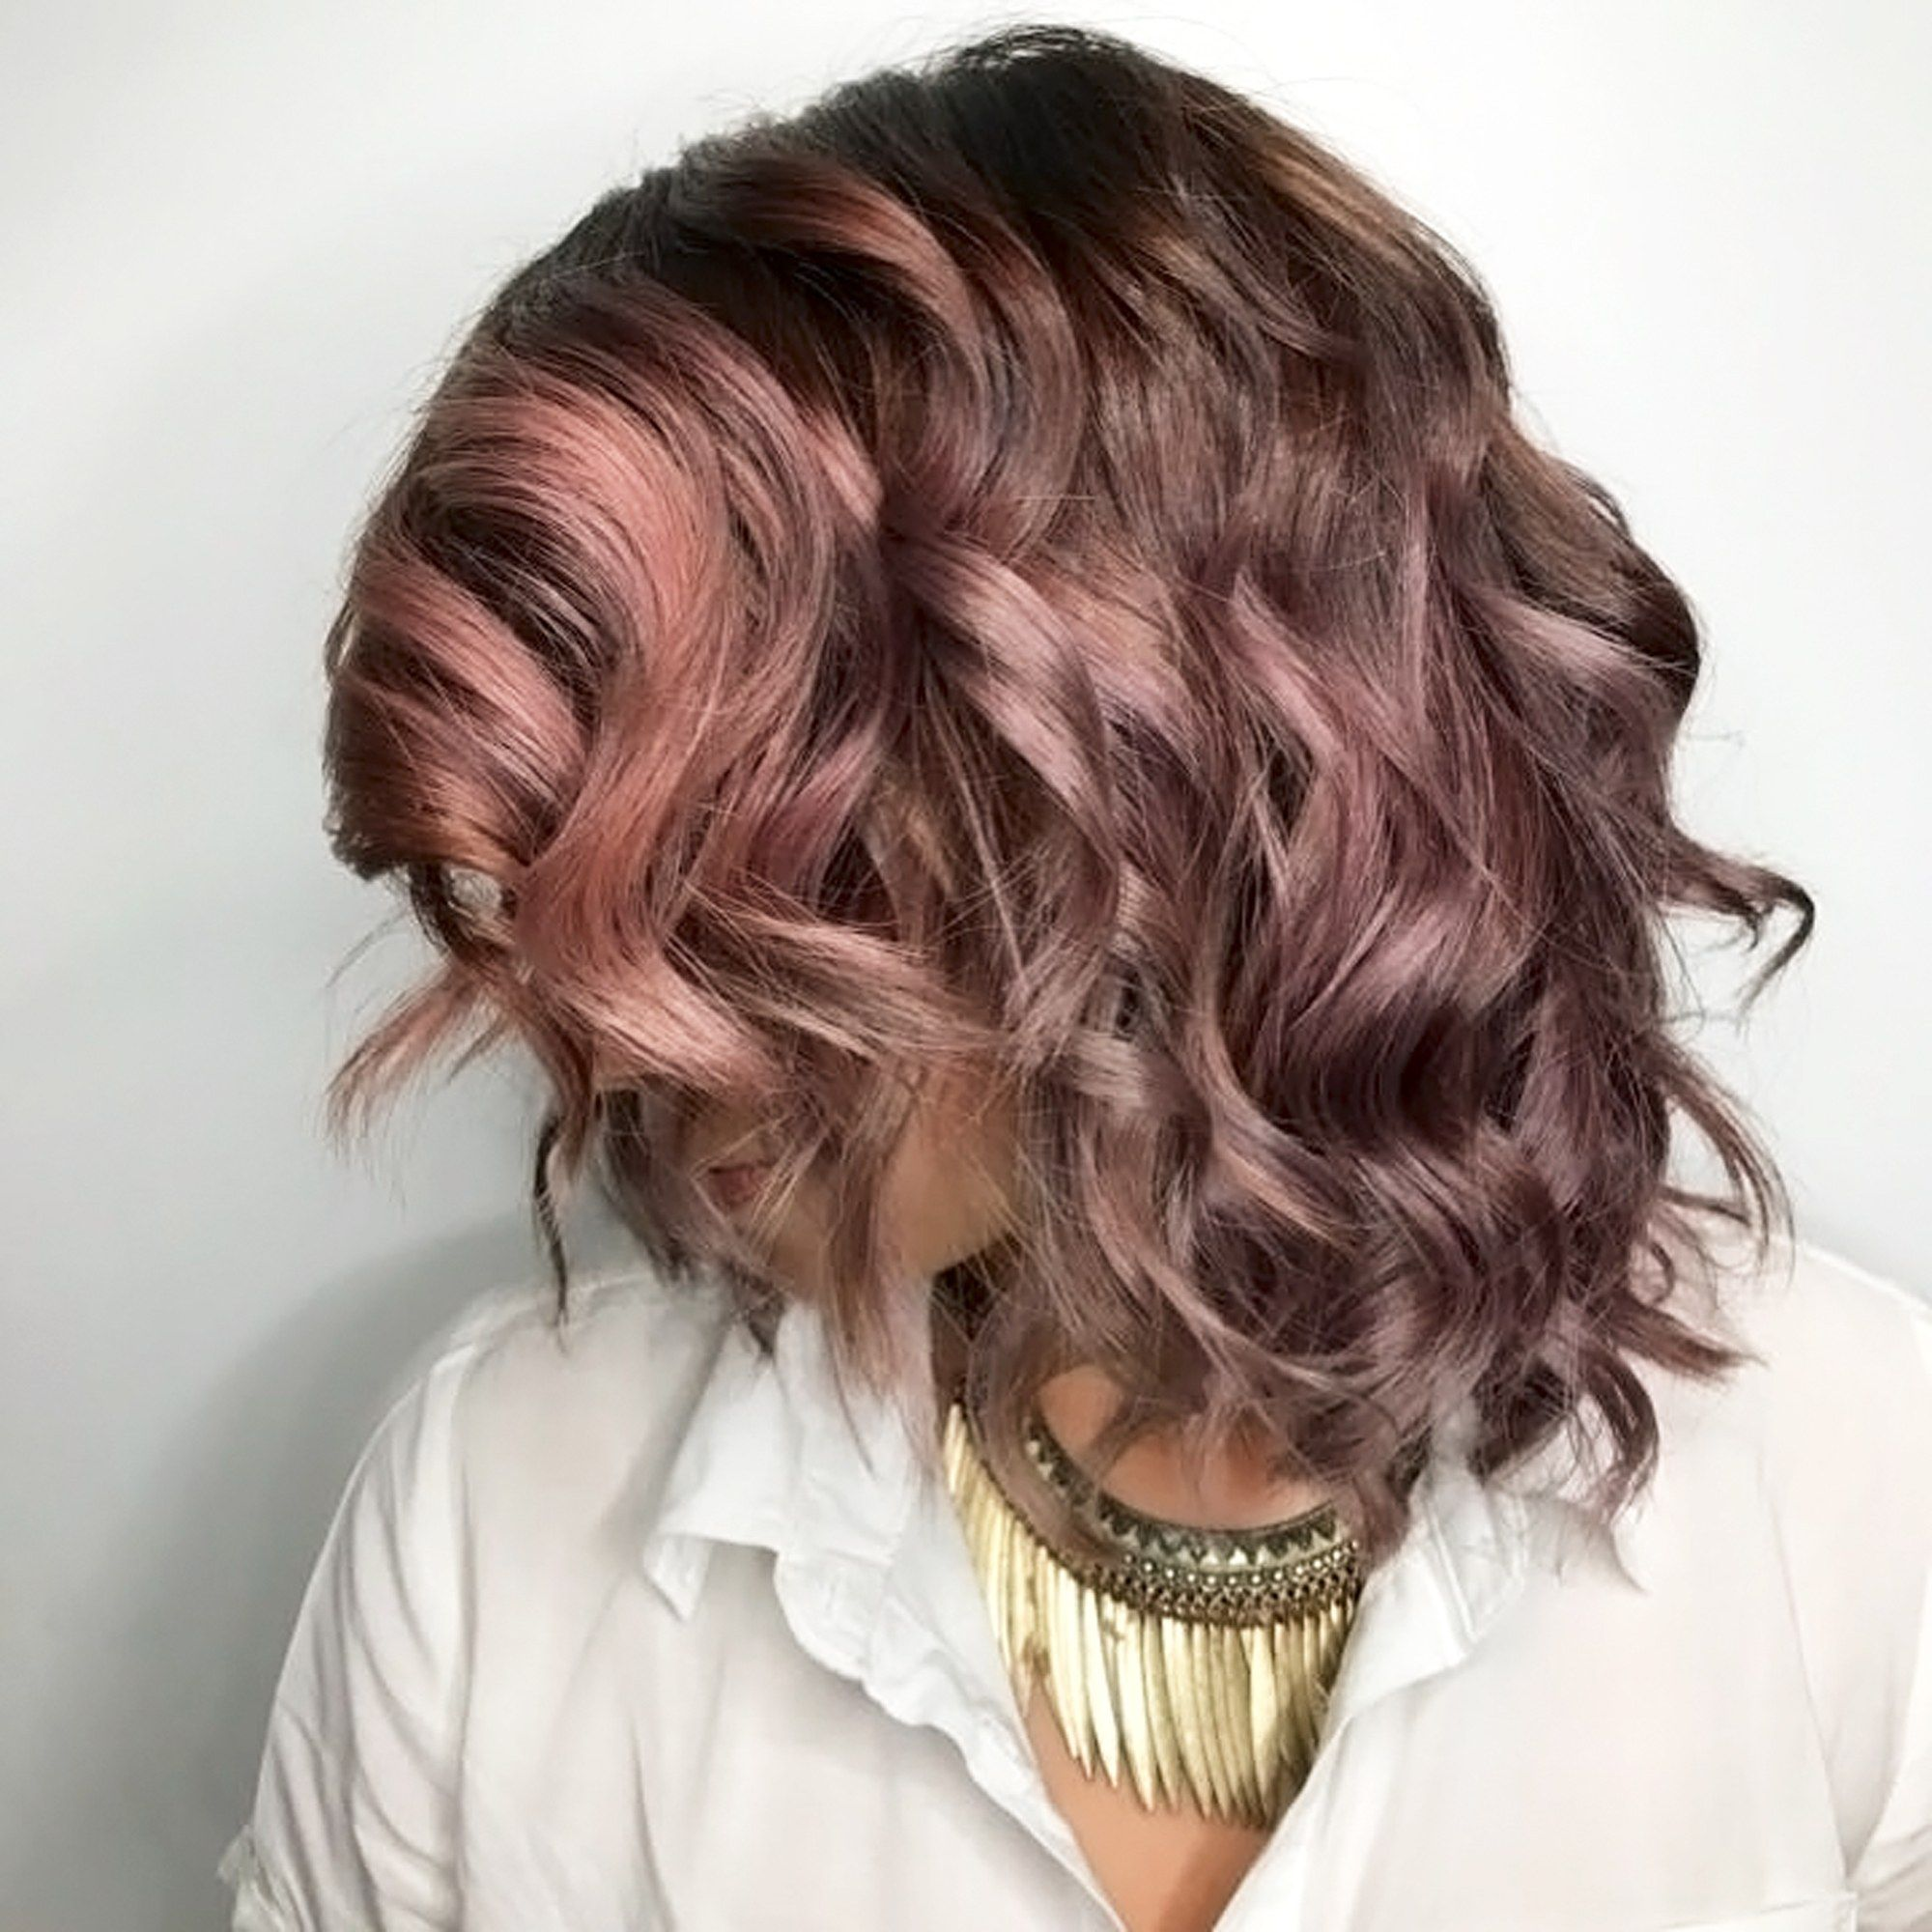 Chocolate-Mauve Hair Is the New Trend You Have to Try | Fall hair ...